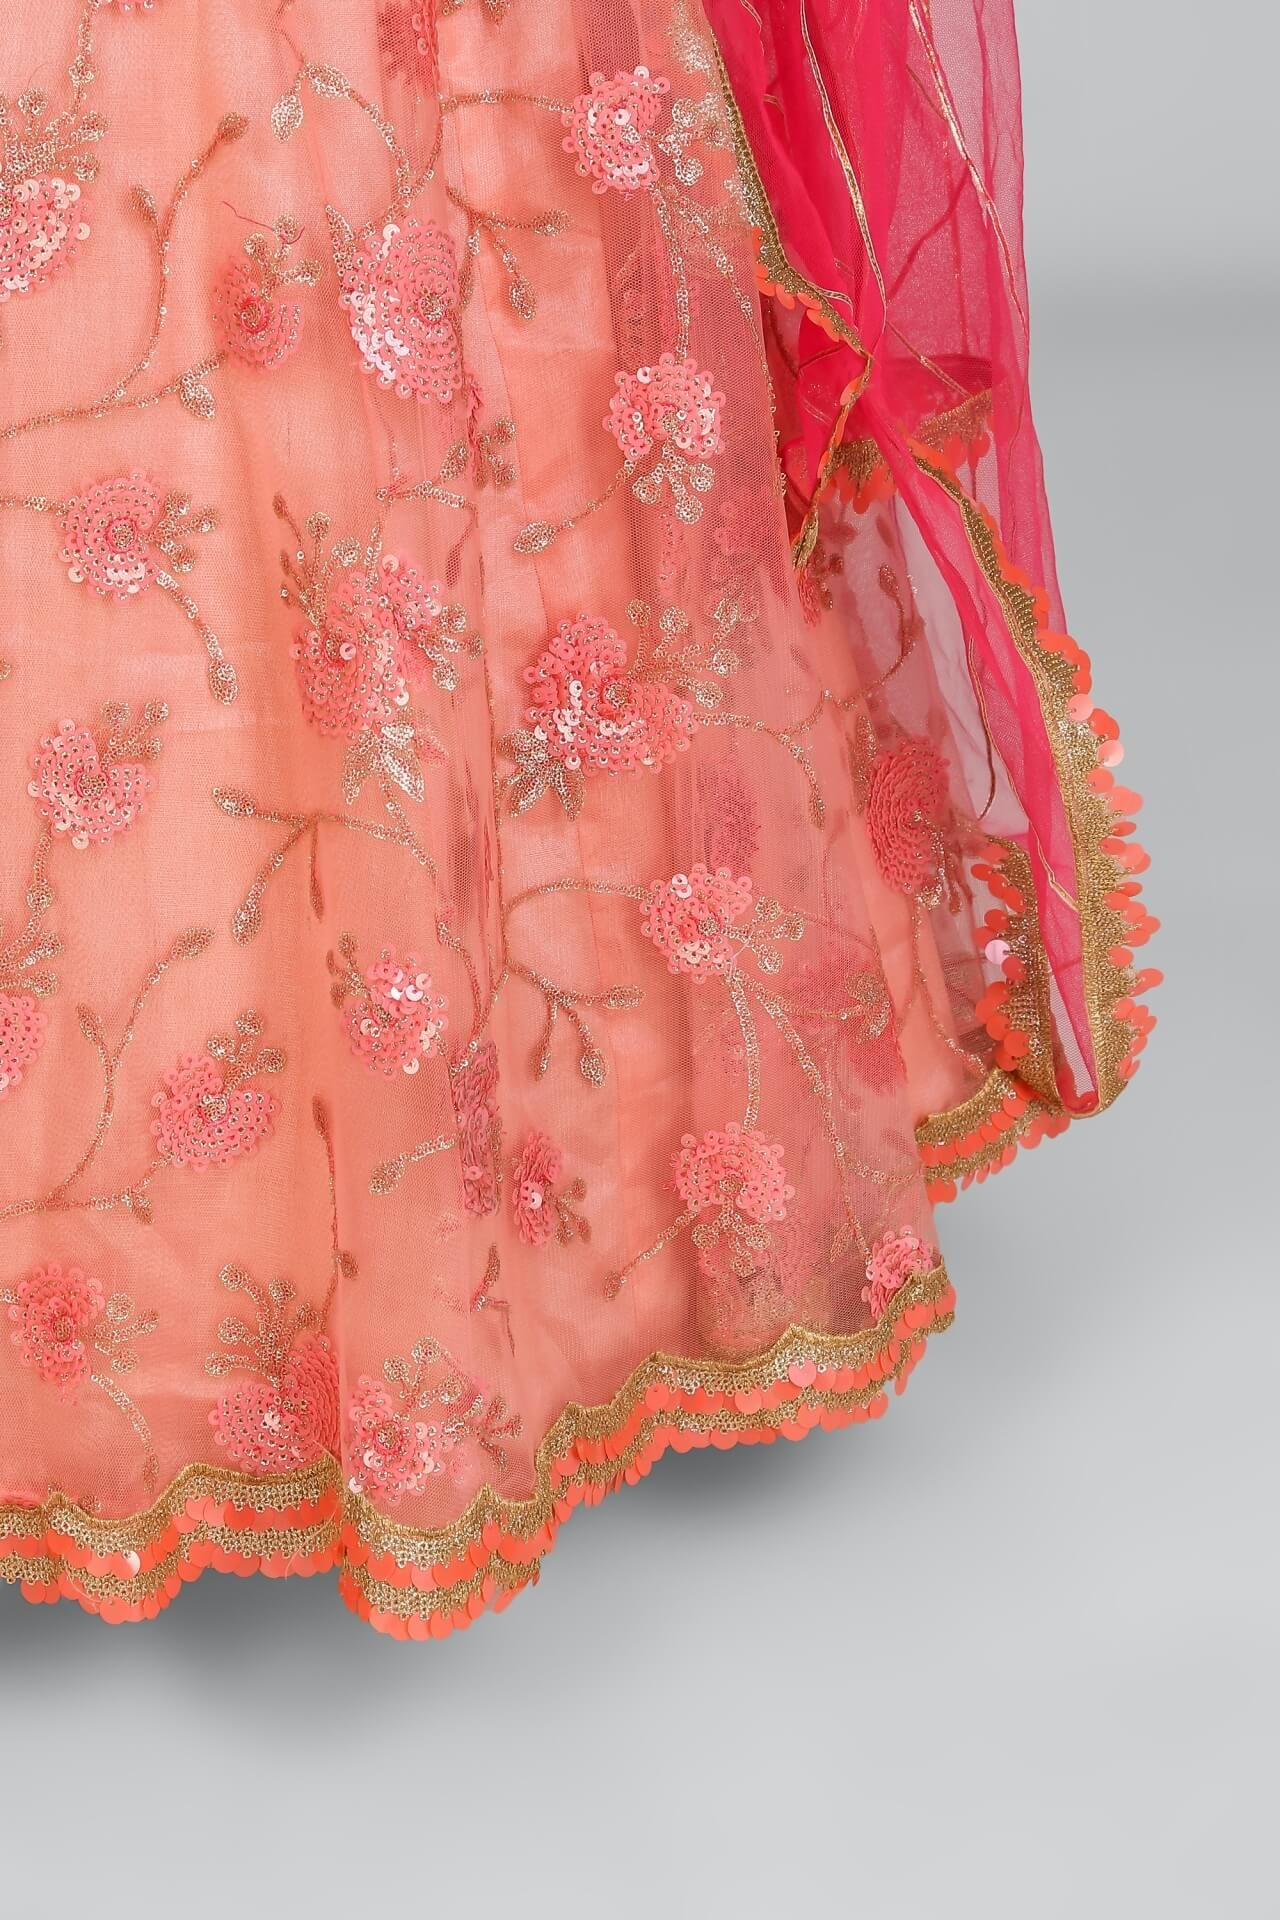 Multi Sequins Peach Lehenga With Contrast Scallop Dupatta